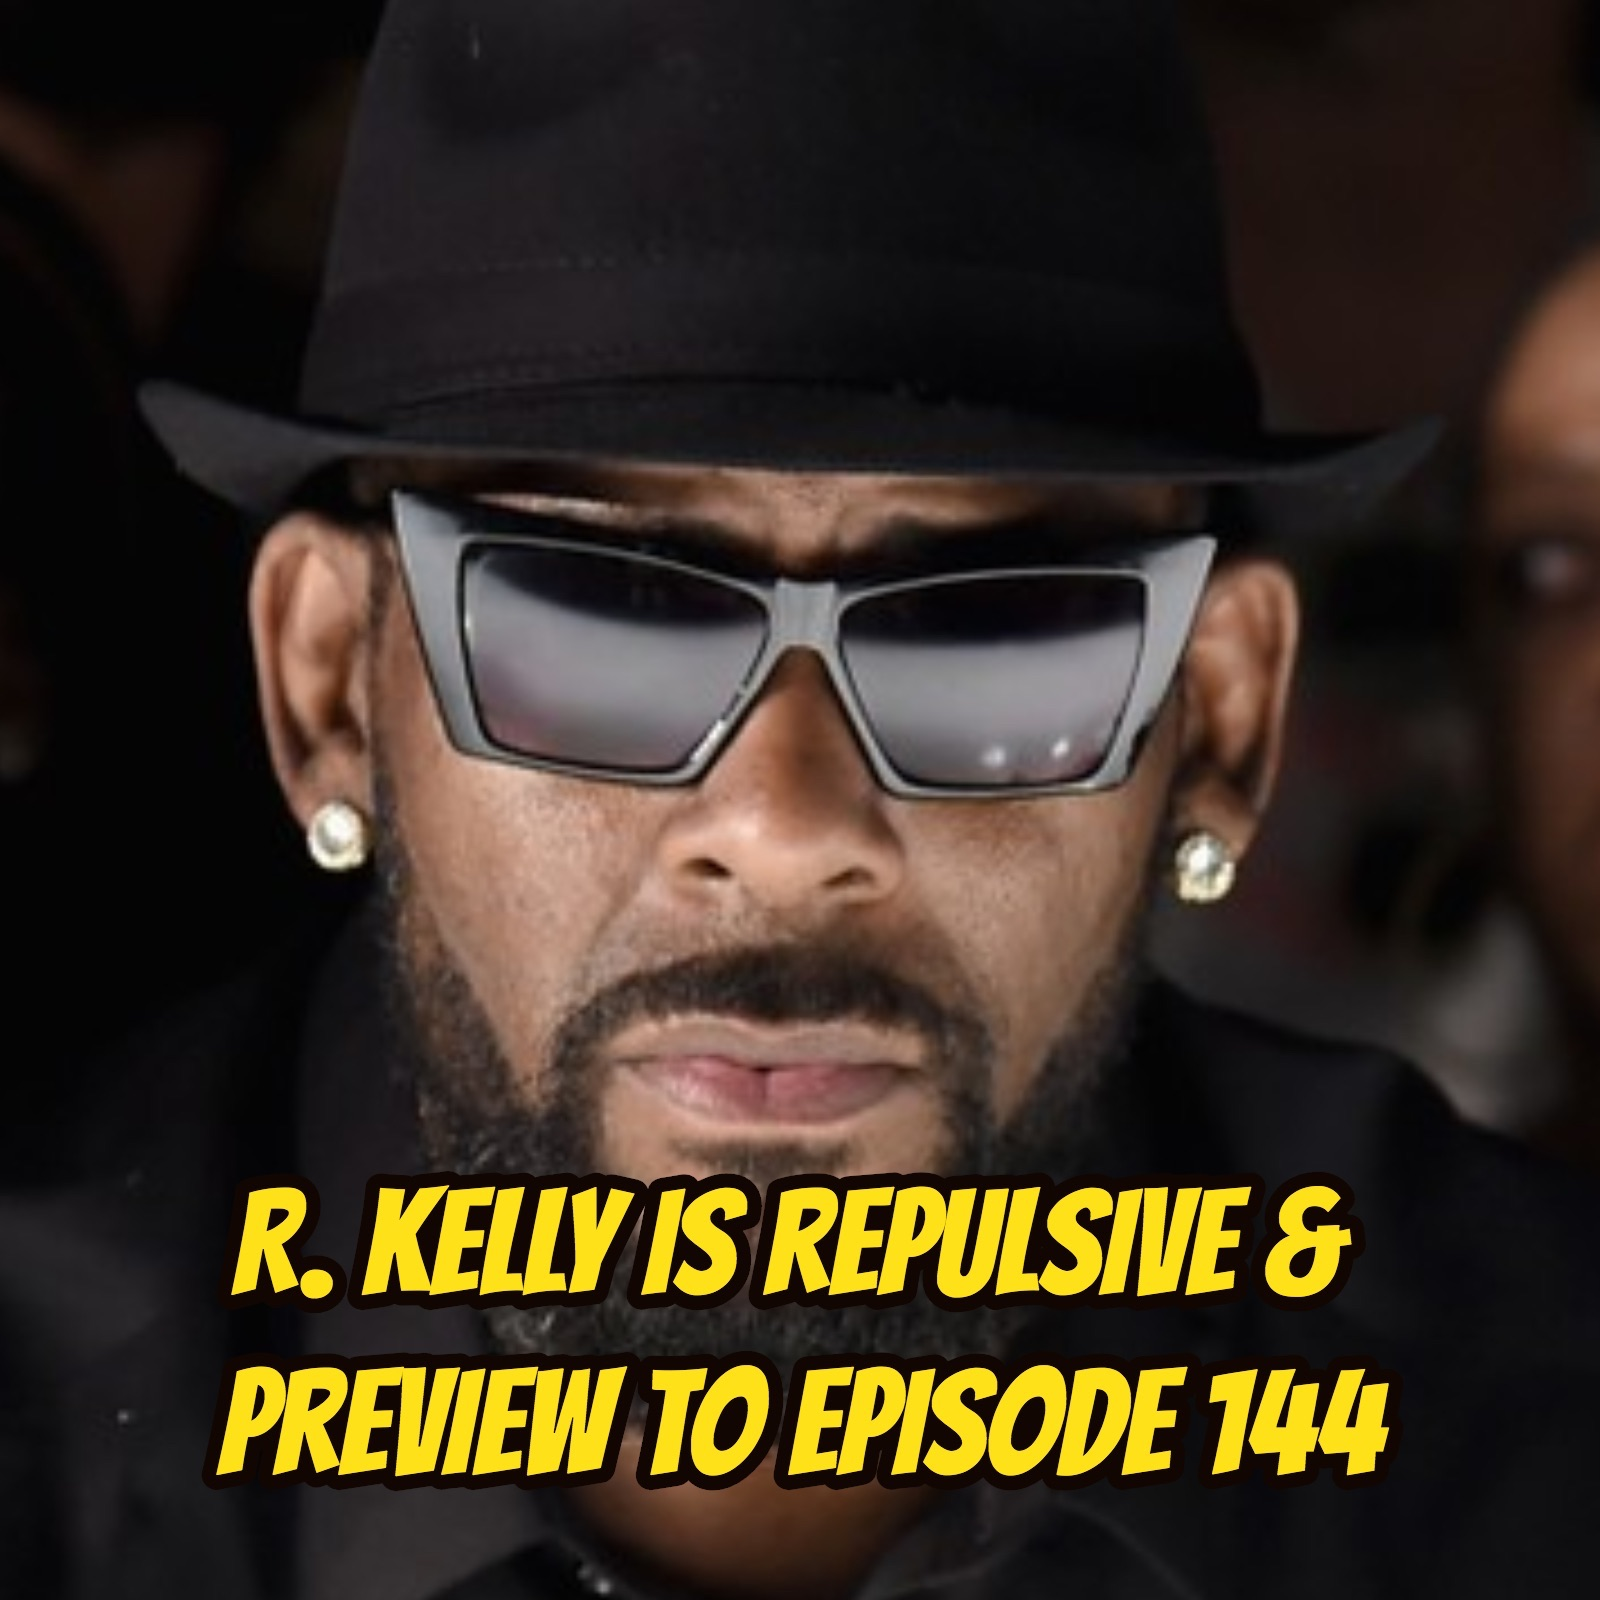 R. Kelly is Repulsive & Preview to Episode 144